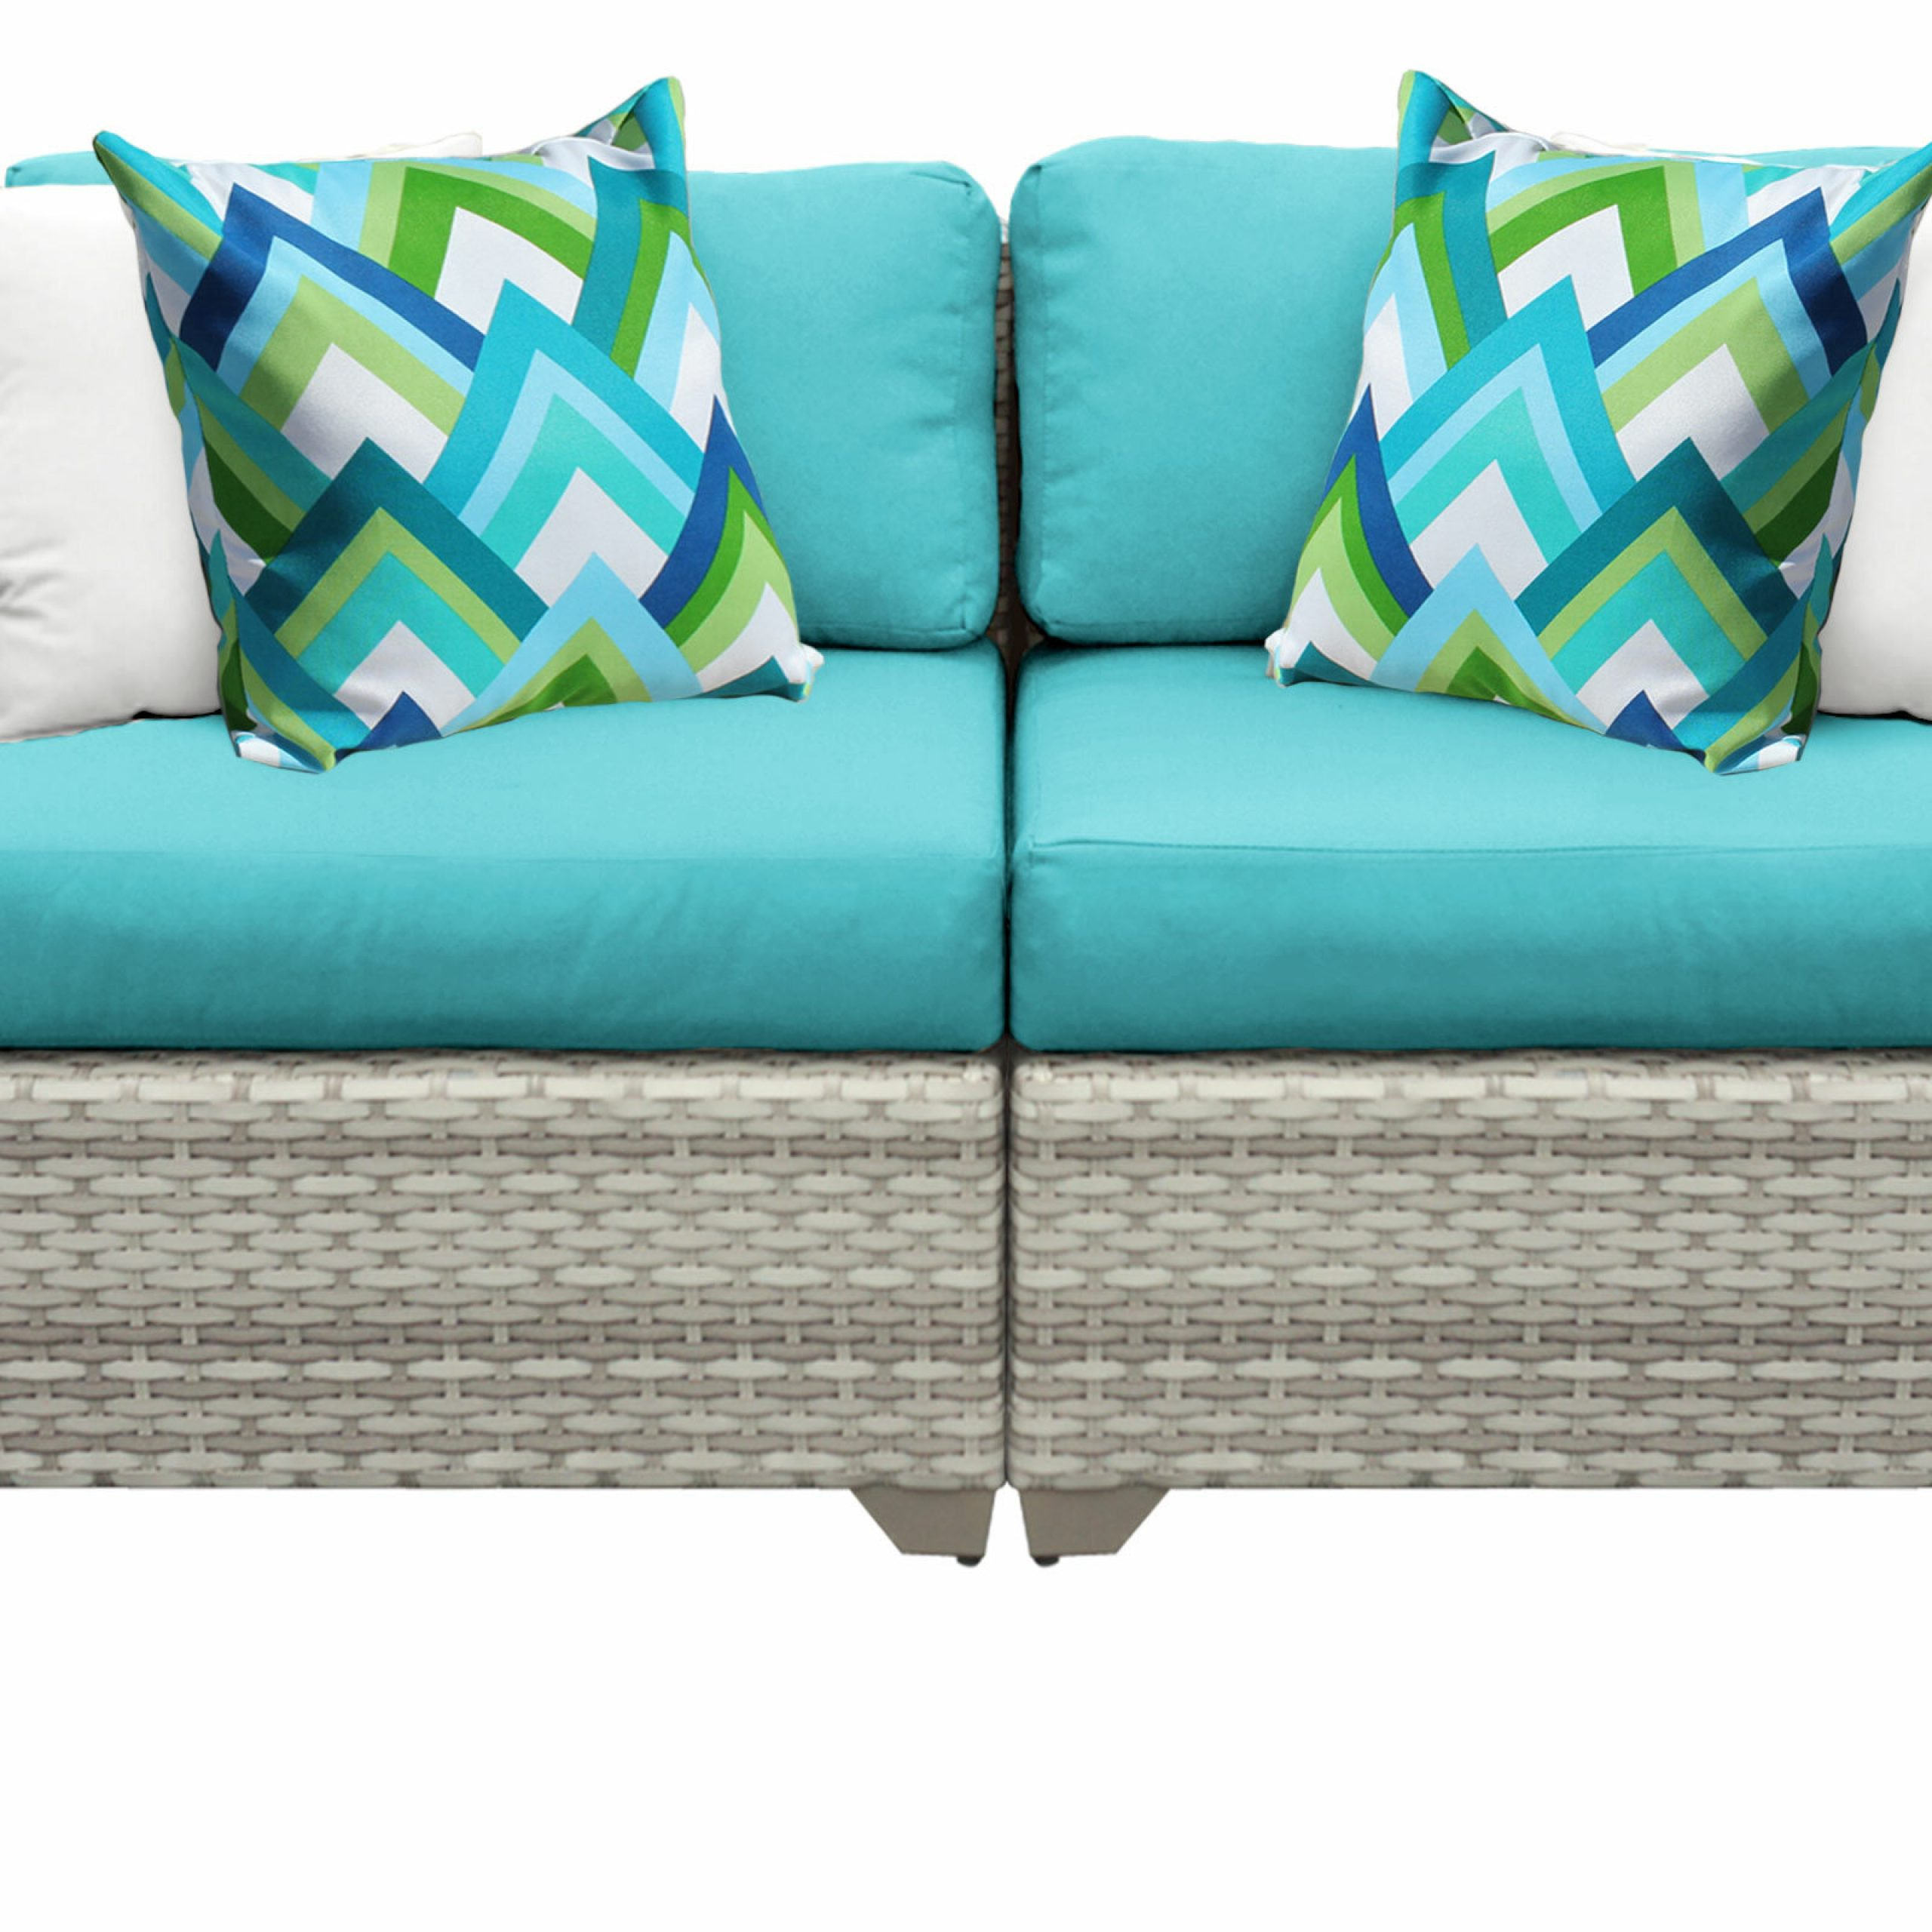 Widely Used Falmouth Loveseat With Cushions With Regard To Furst Outdoor Loveseats With Cushions (Gallery 22 of 25)